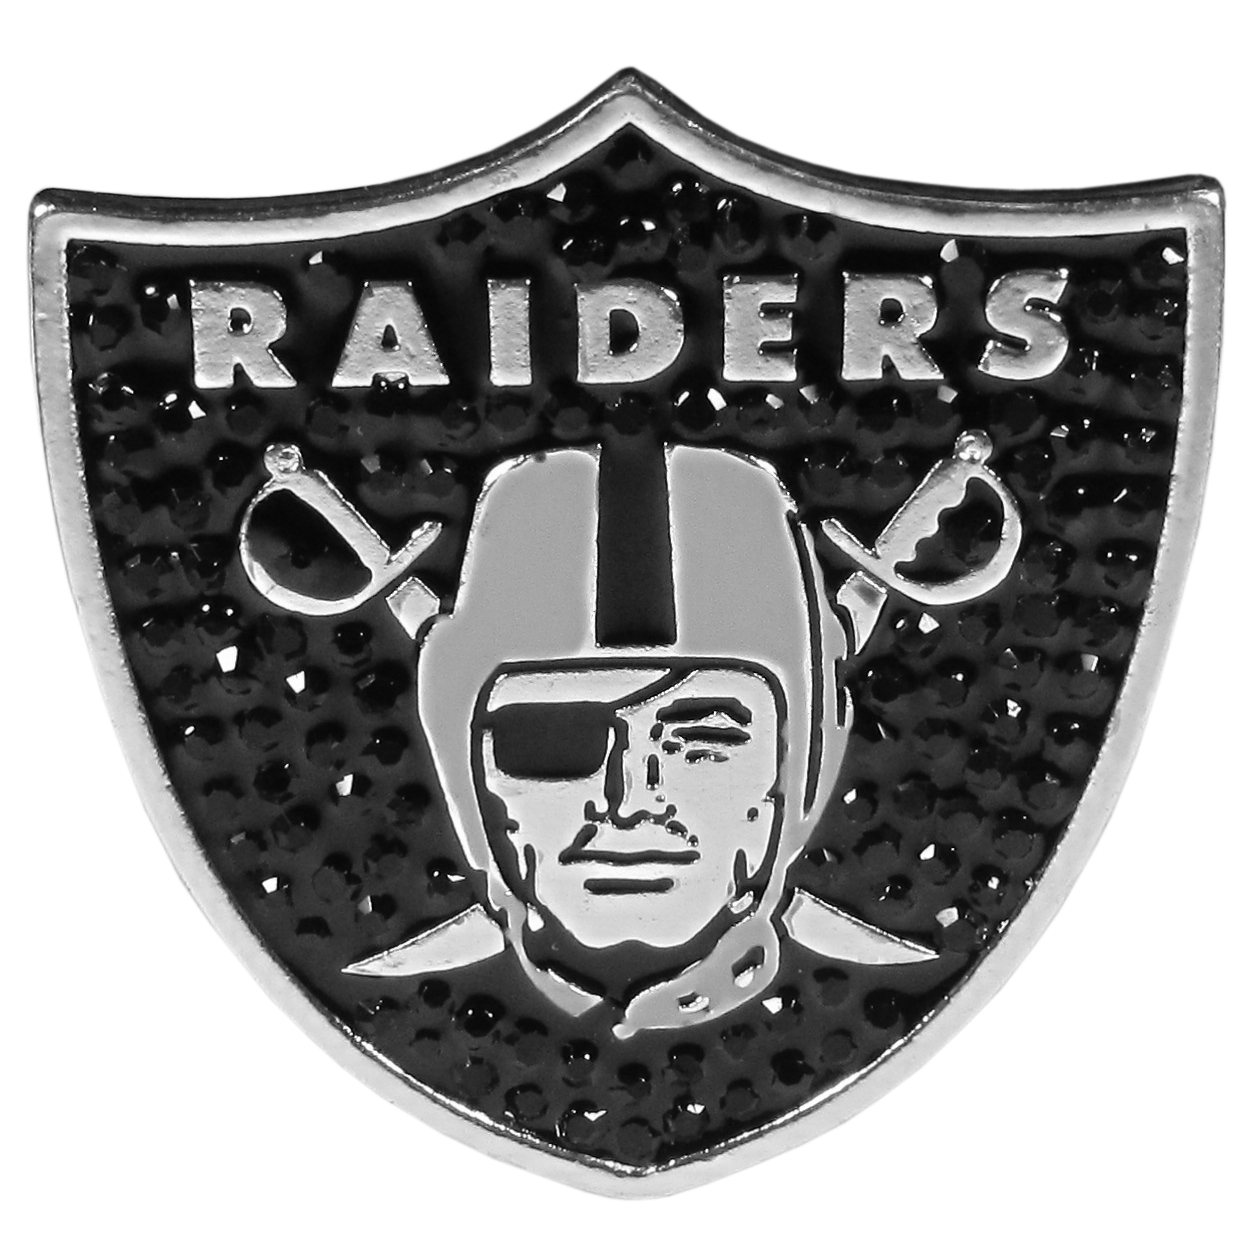 Oakland Raiders Crystal Pin - The Oakland Raiders 2 inch pin is covered in team colored crystals on a silver plated painted background.